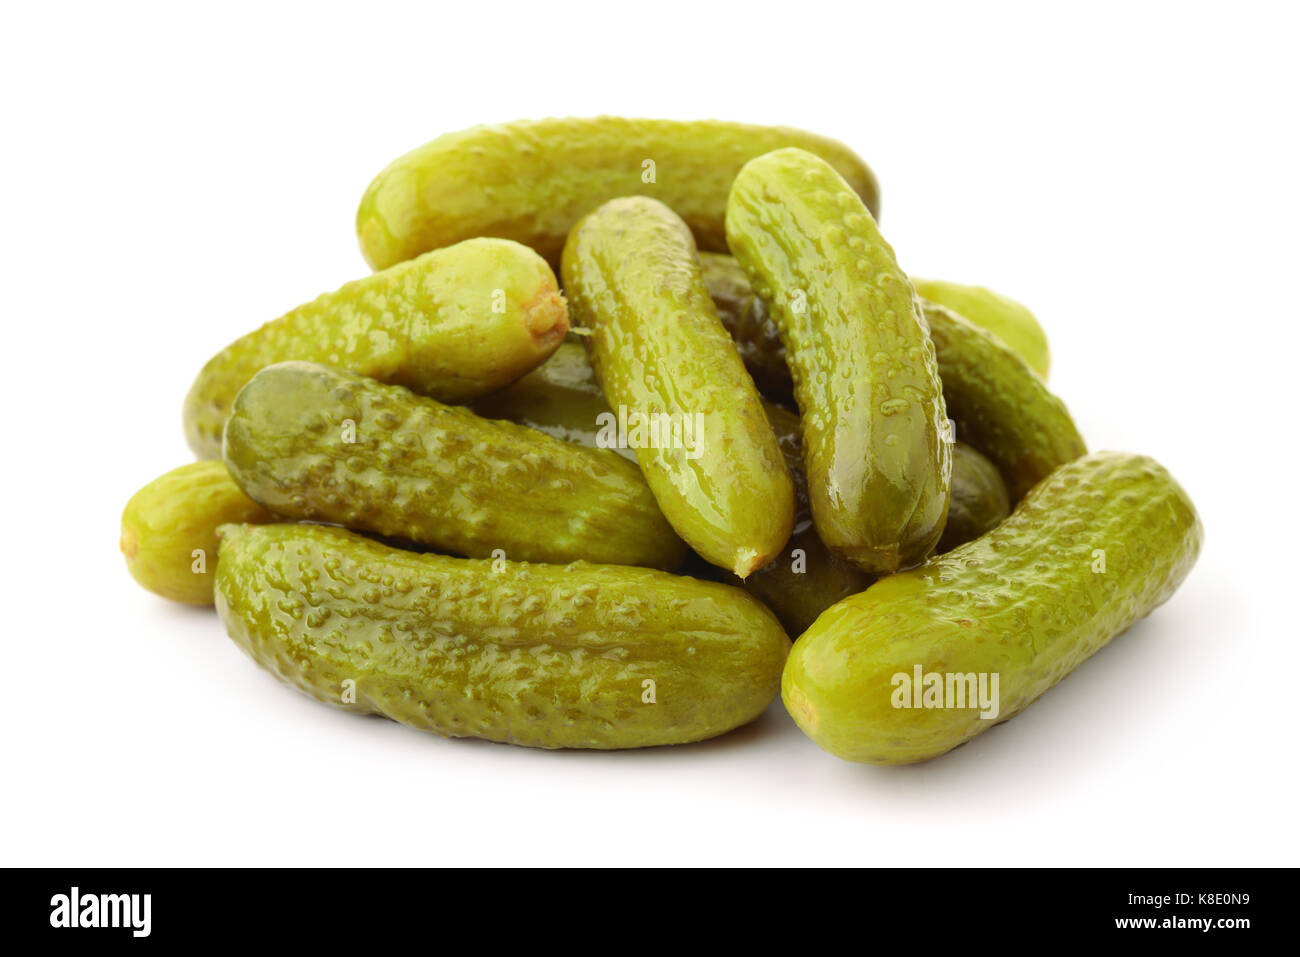 Pile of pickled cucumbers isolated on white - Stock Image